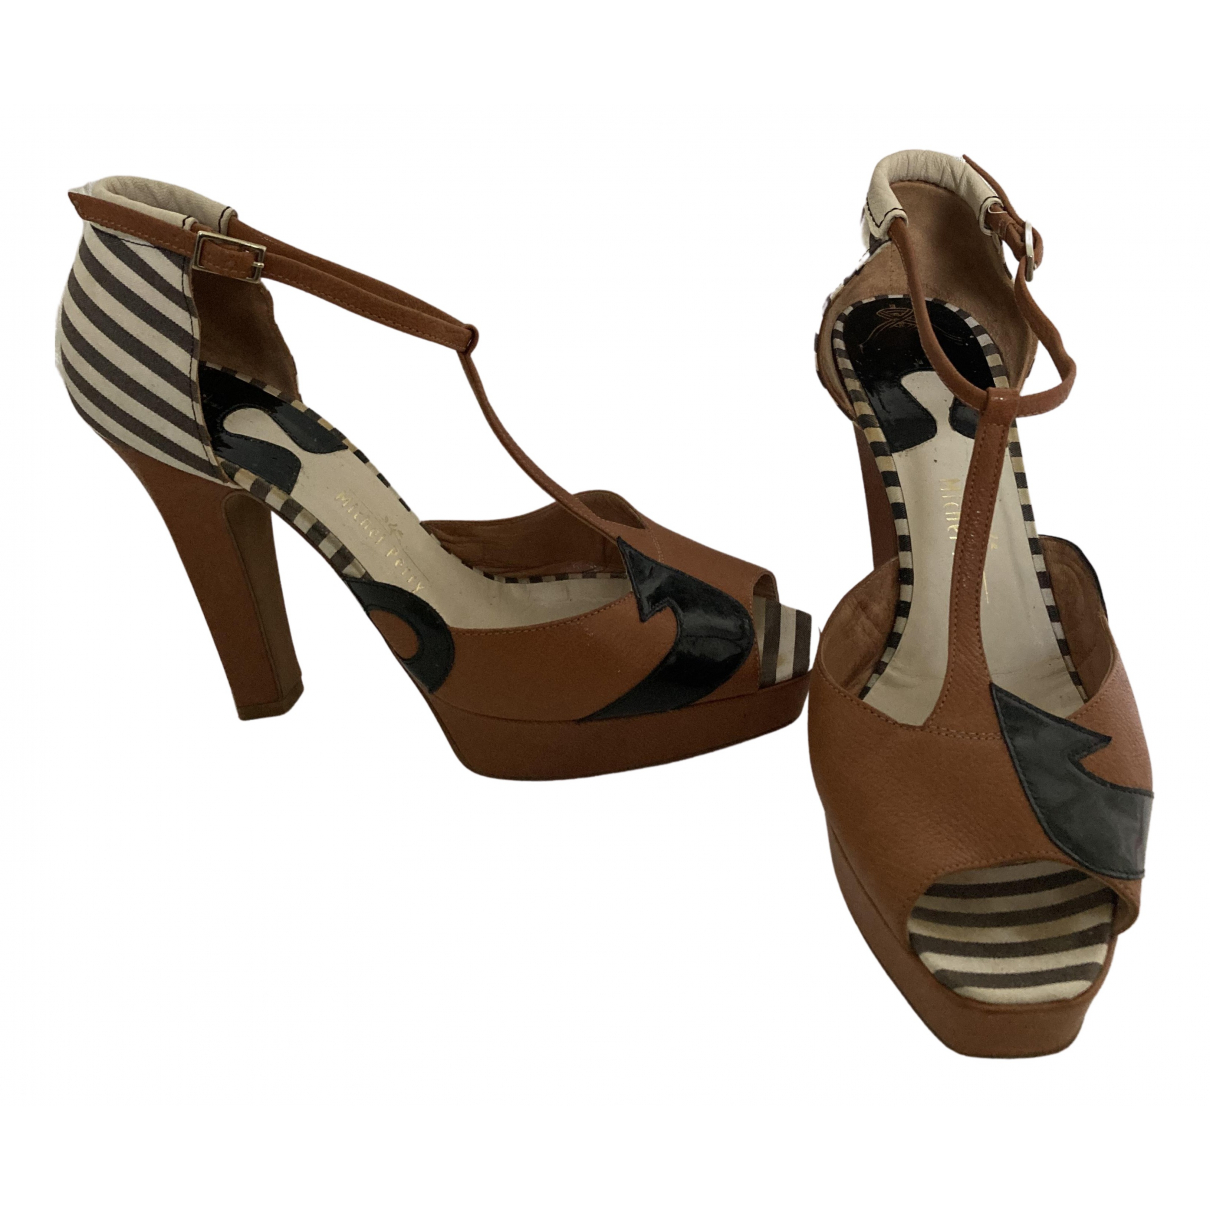 Michel Perry N Multicolour Leather Sandals for Women 40 EU